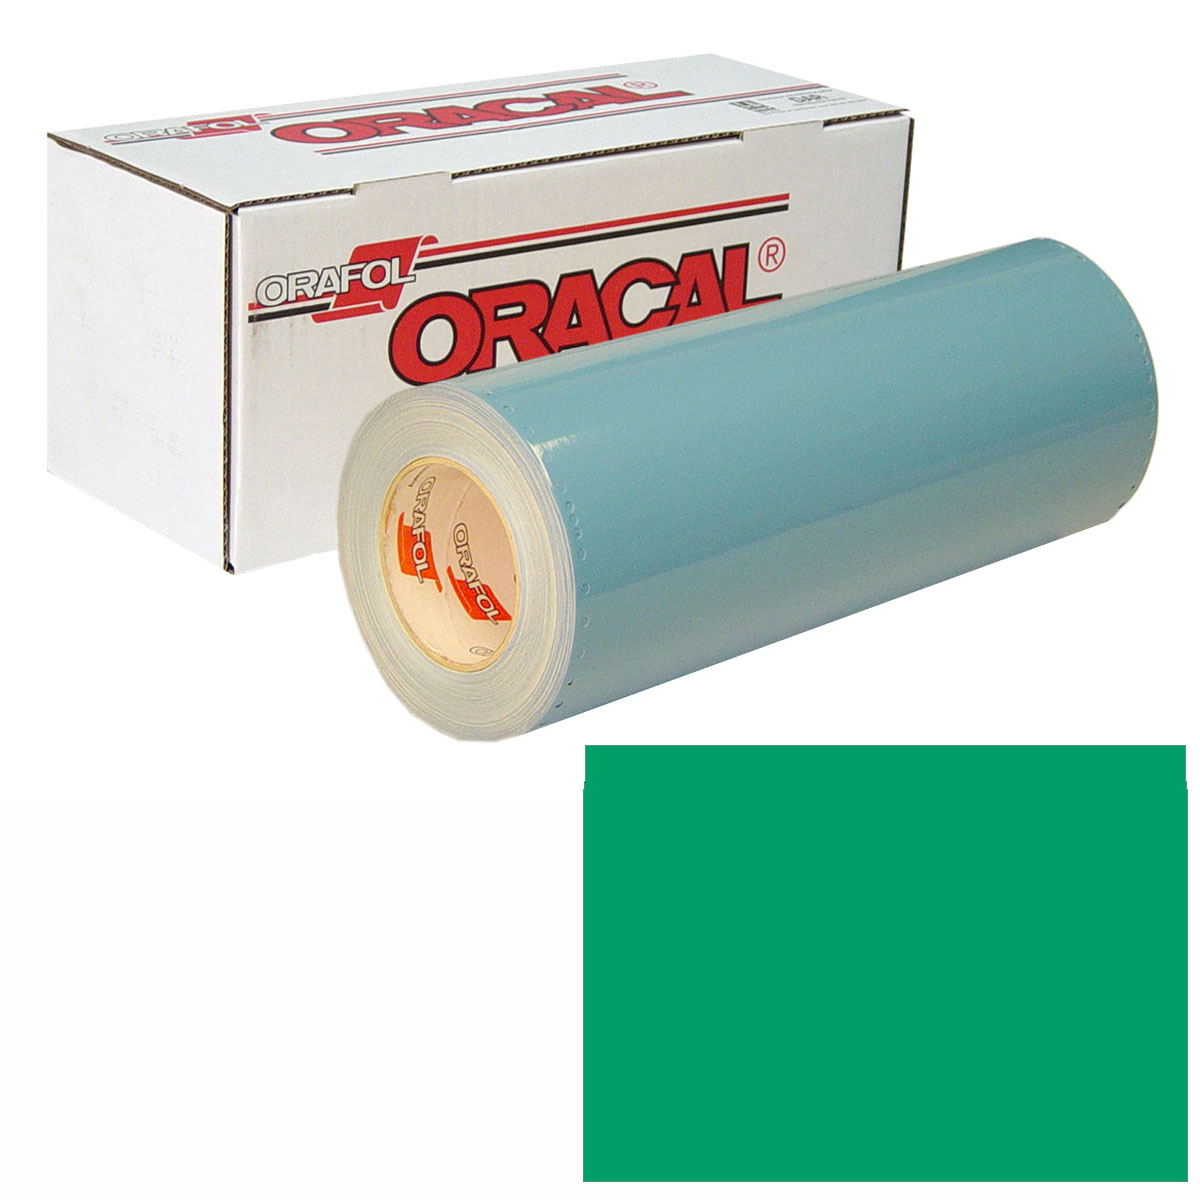 ORACAL 751 30in X 50yd 068 Grass Green